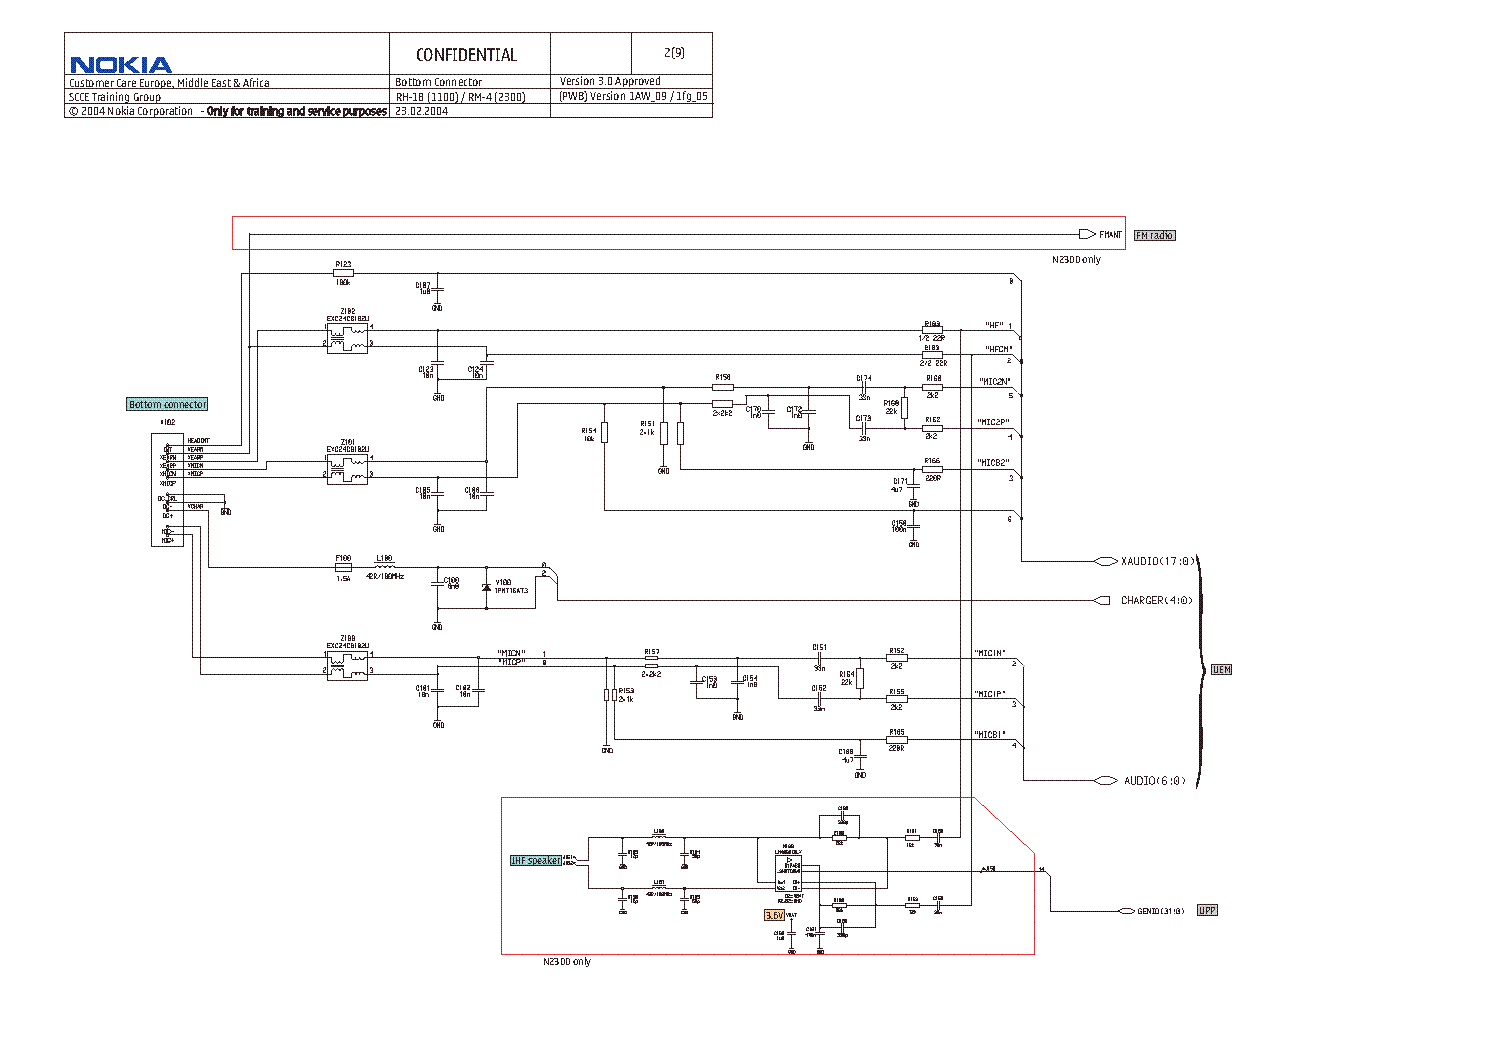 nokia_2300-1100-full-circuit.pdf_2 Nokia Schematic on diver mode, ear spkrsply, key features, tracfone phones, basic phones, girl holding, speaker ways, mobile phone motherboerd,